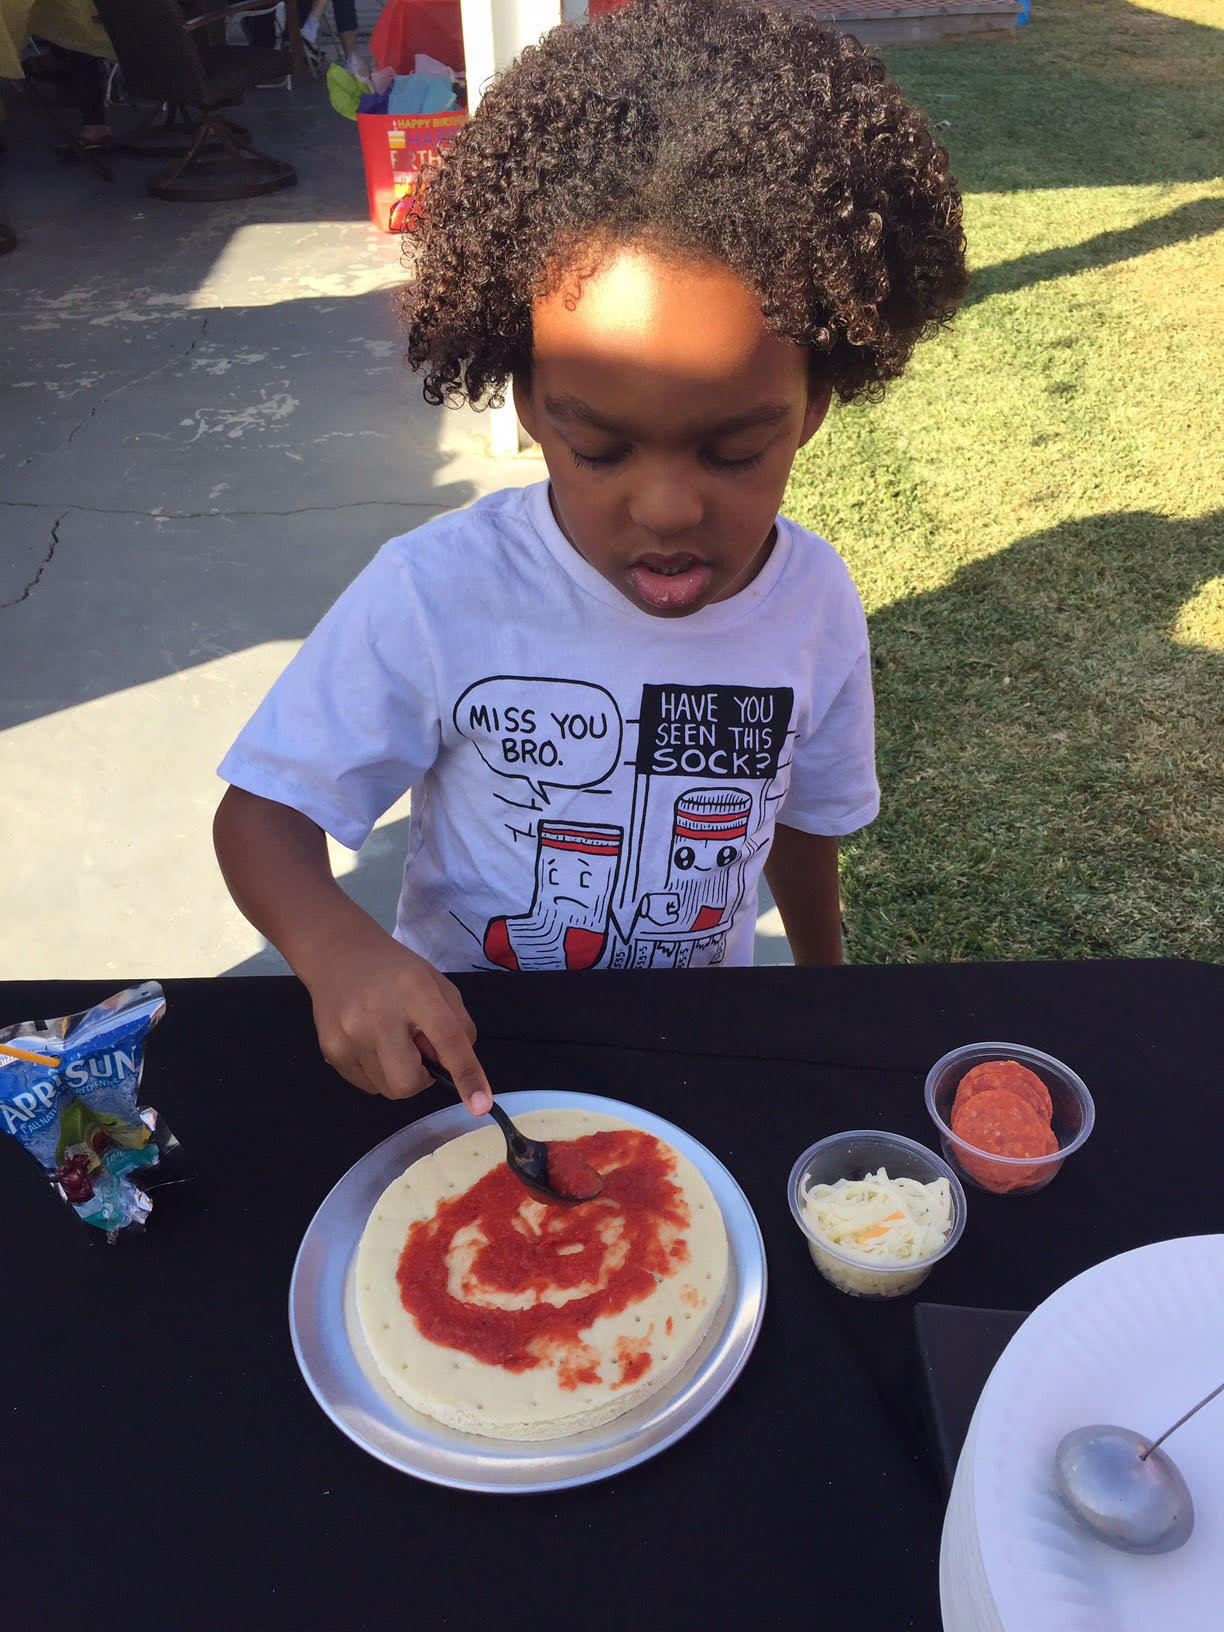 Pizzarageous childrens birthday party